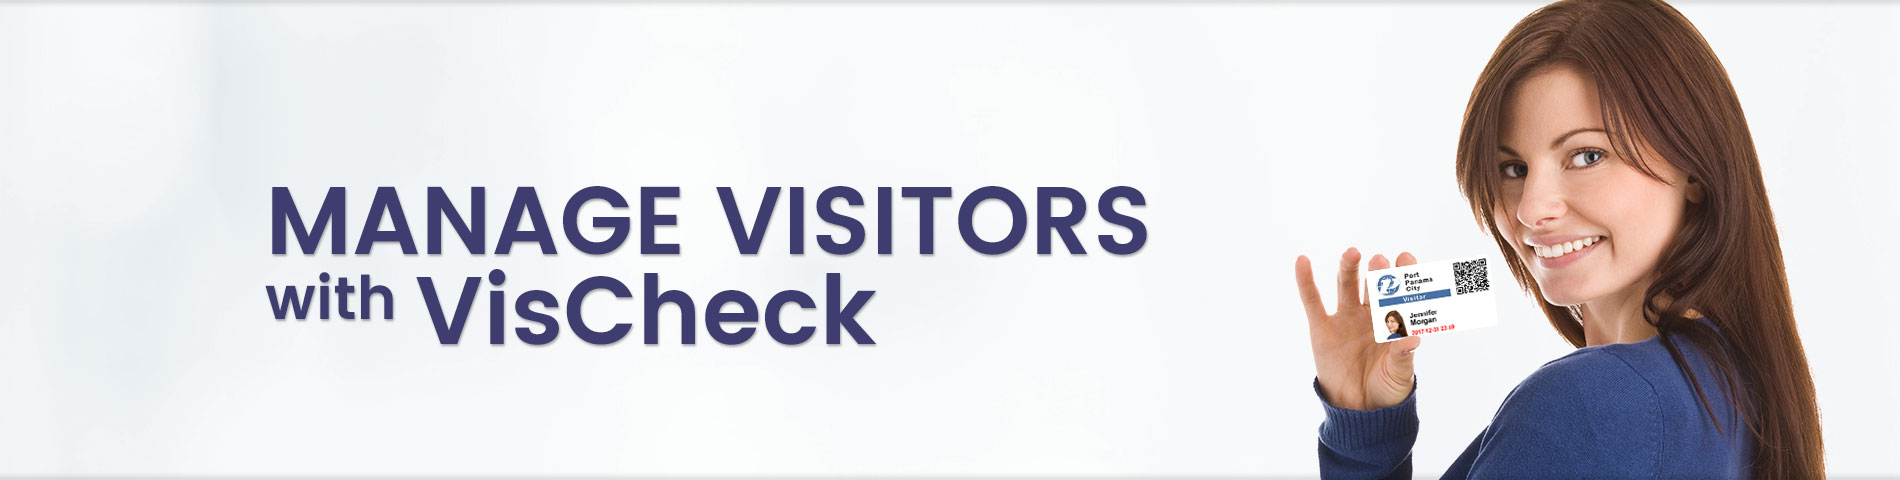 Visitor Identification & Verification Management